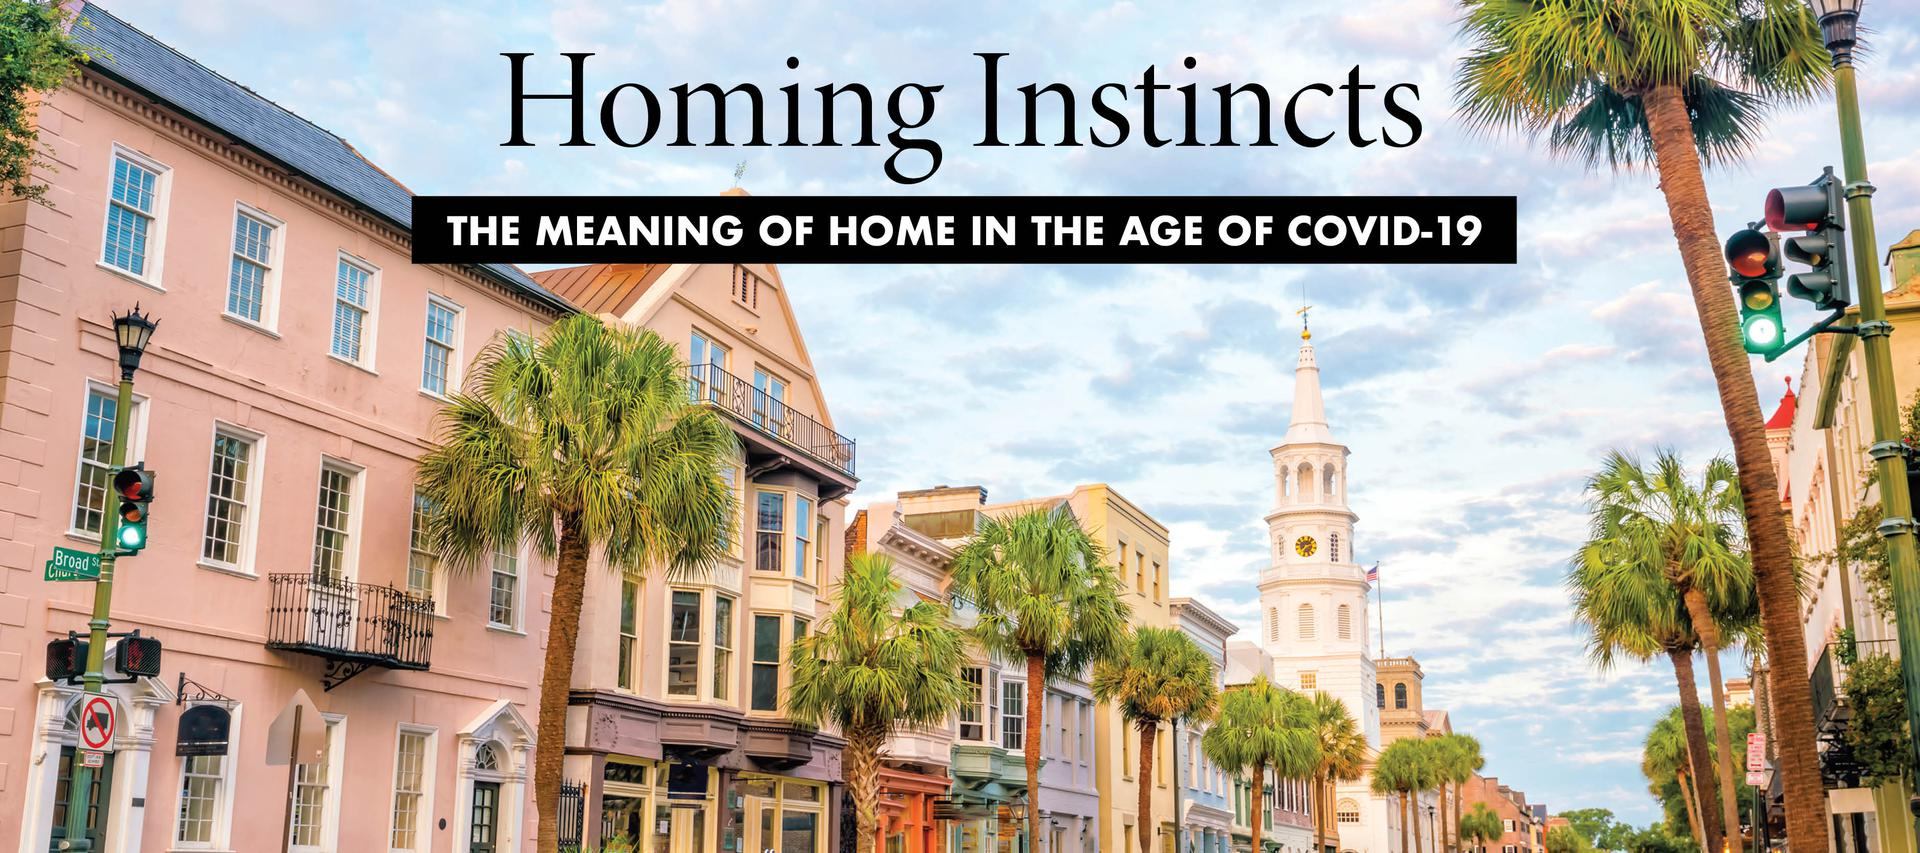 Southern View - The Meaning of Home During the Age of COVID-19